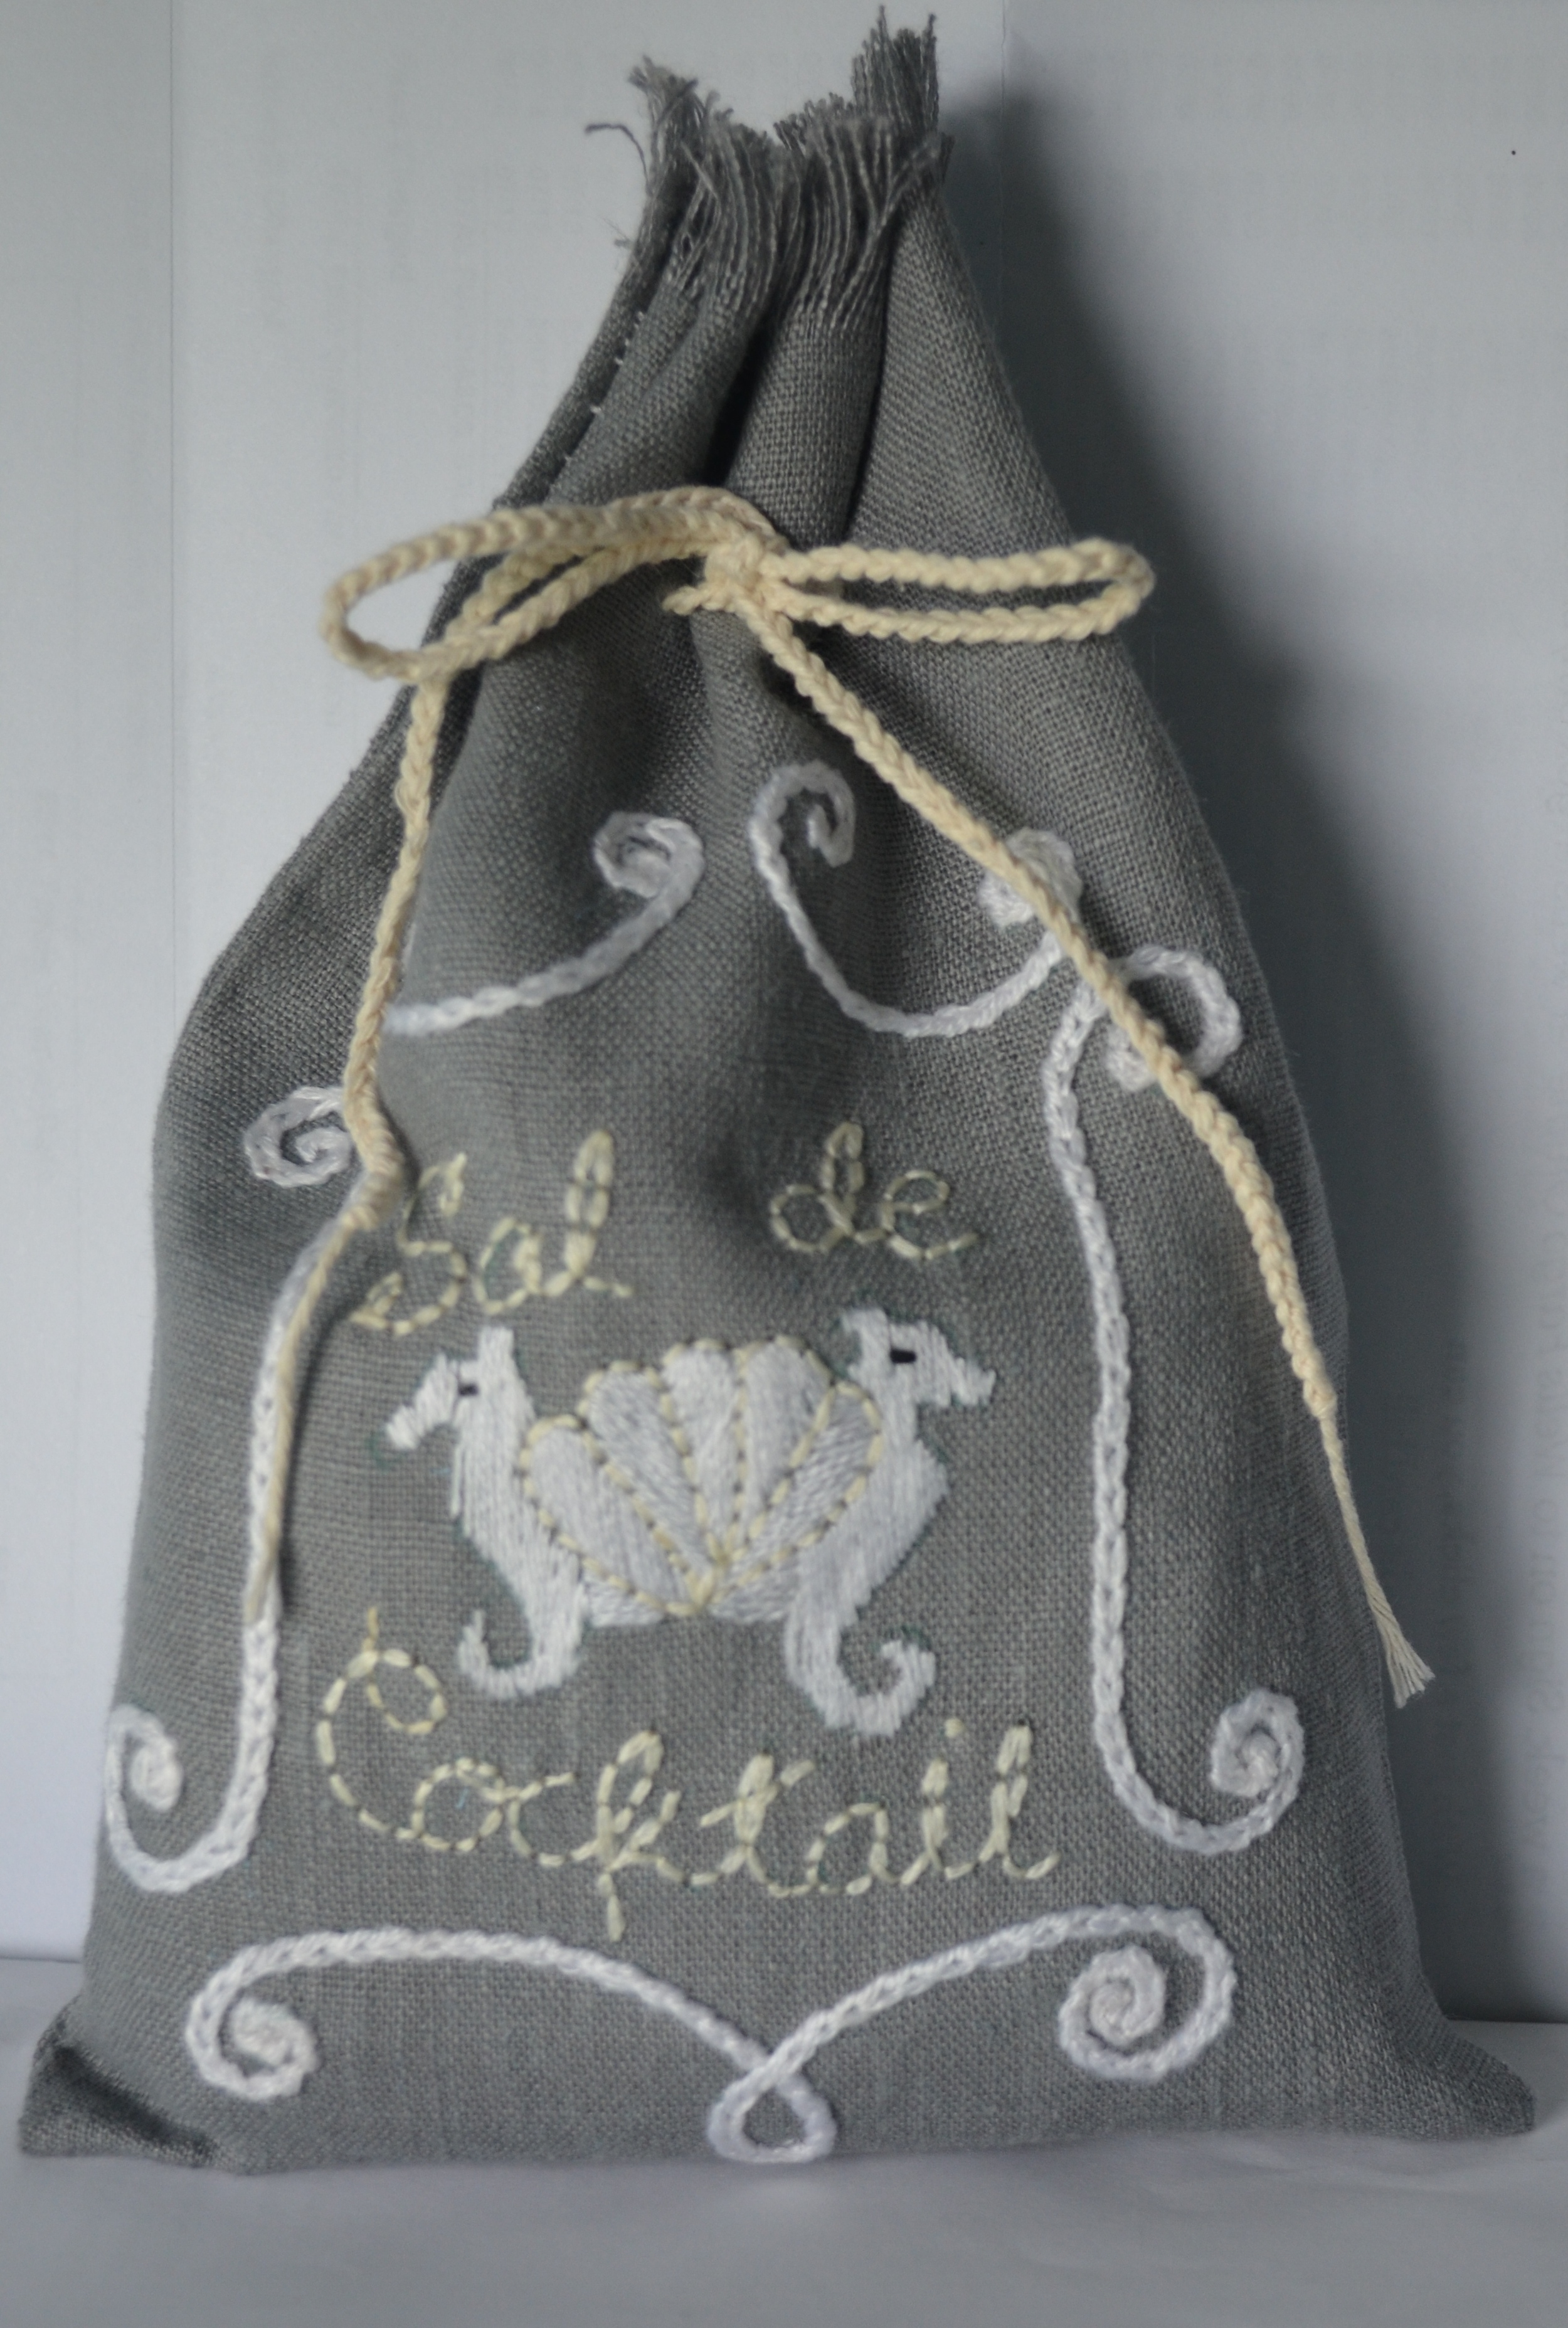 First look at our new linen Sal de Cocktail bag!